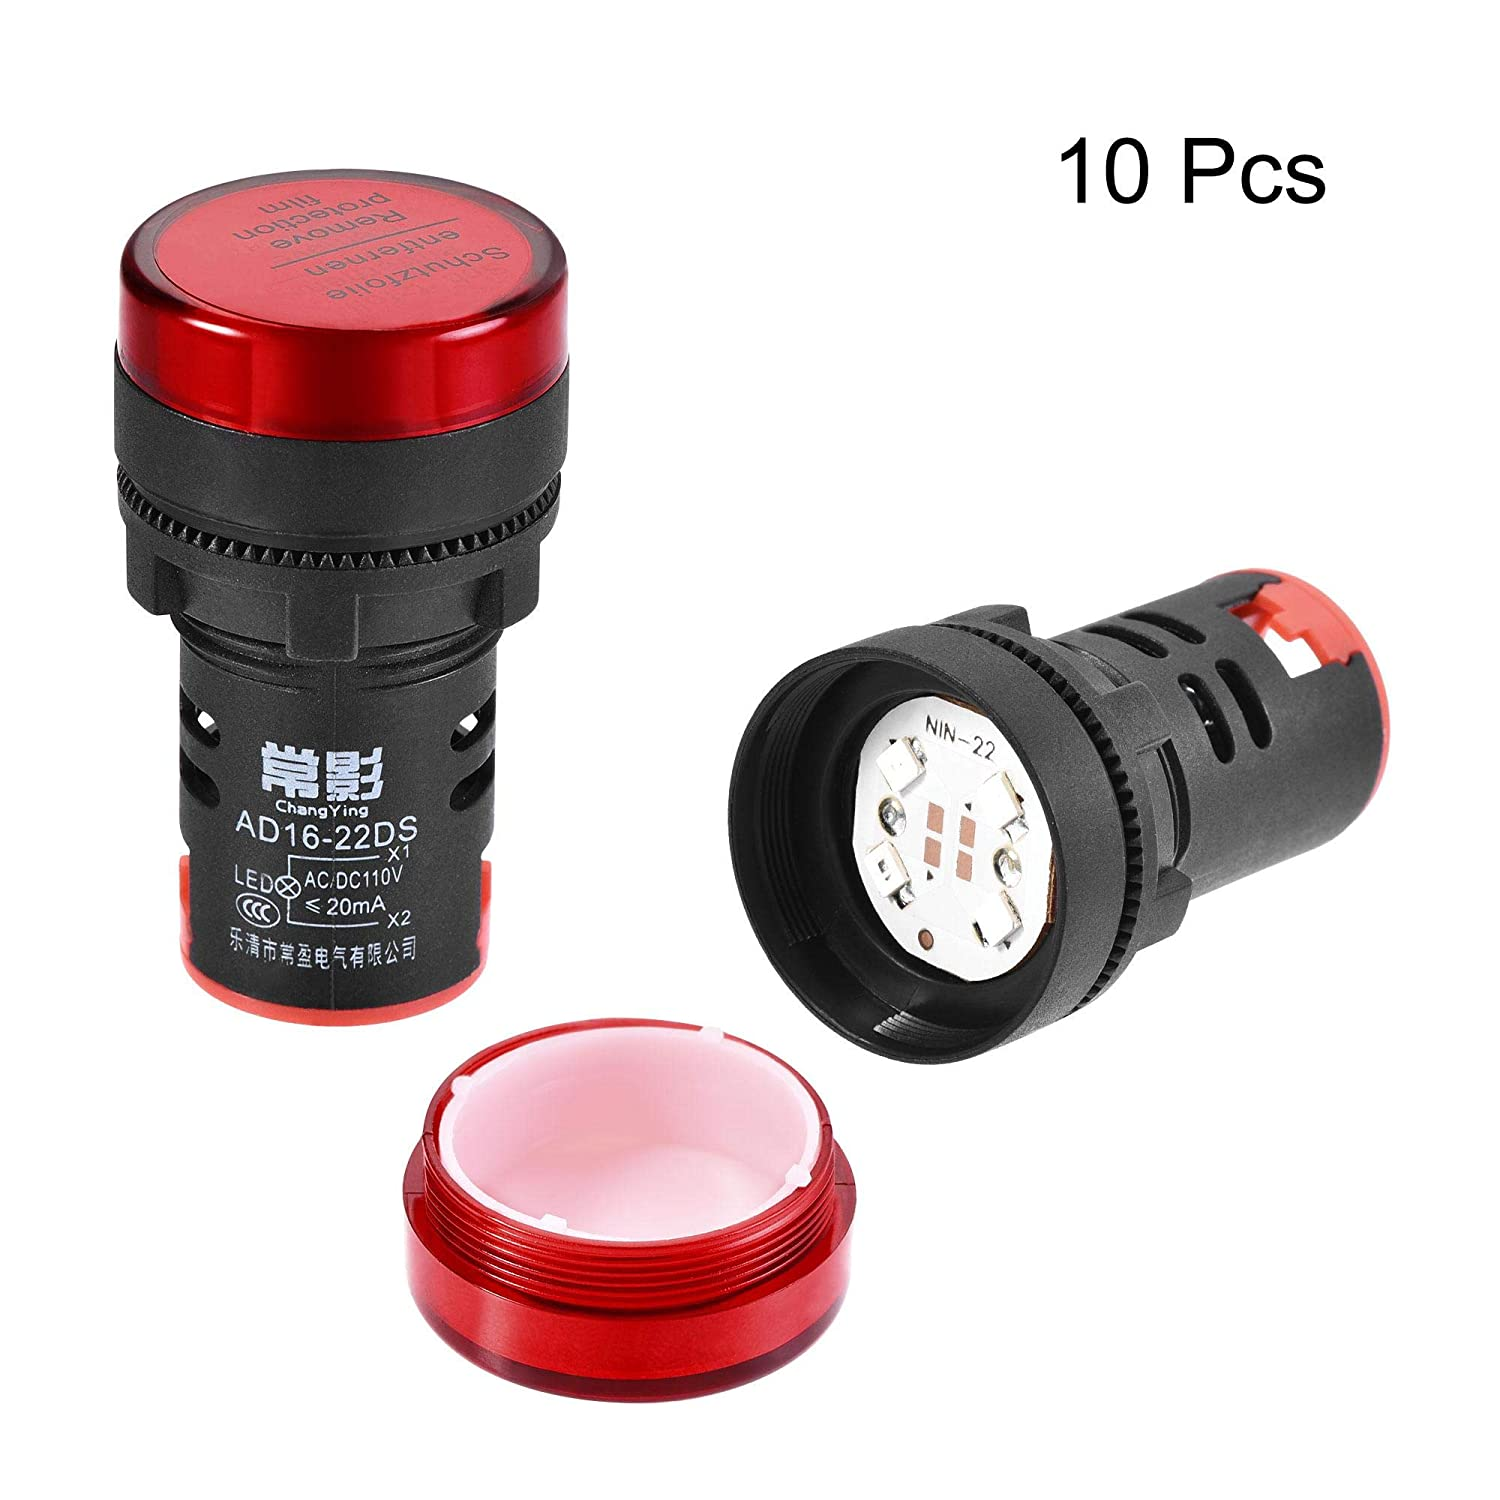 22mm Mounting Hole Blue LED Color Dust Cover IP54 uxcell AC//DC 110V Indicator Lights Pack of 10 for Electrical Control Panel Power Box Switch Cabinet DIY Projects